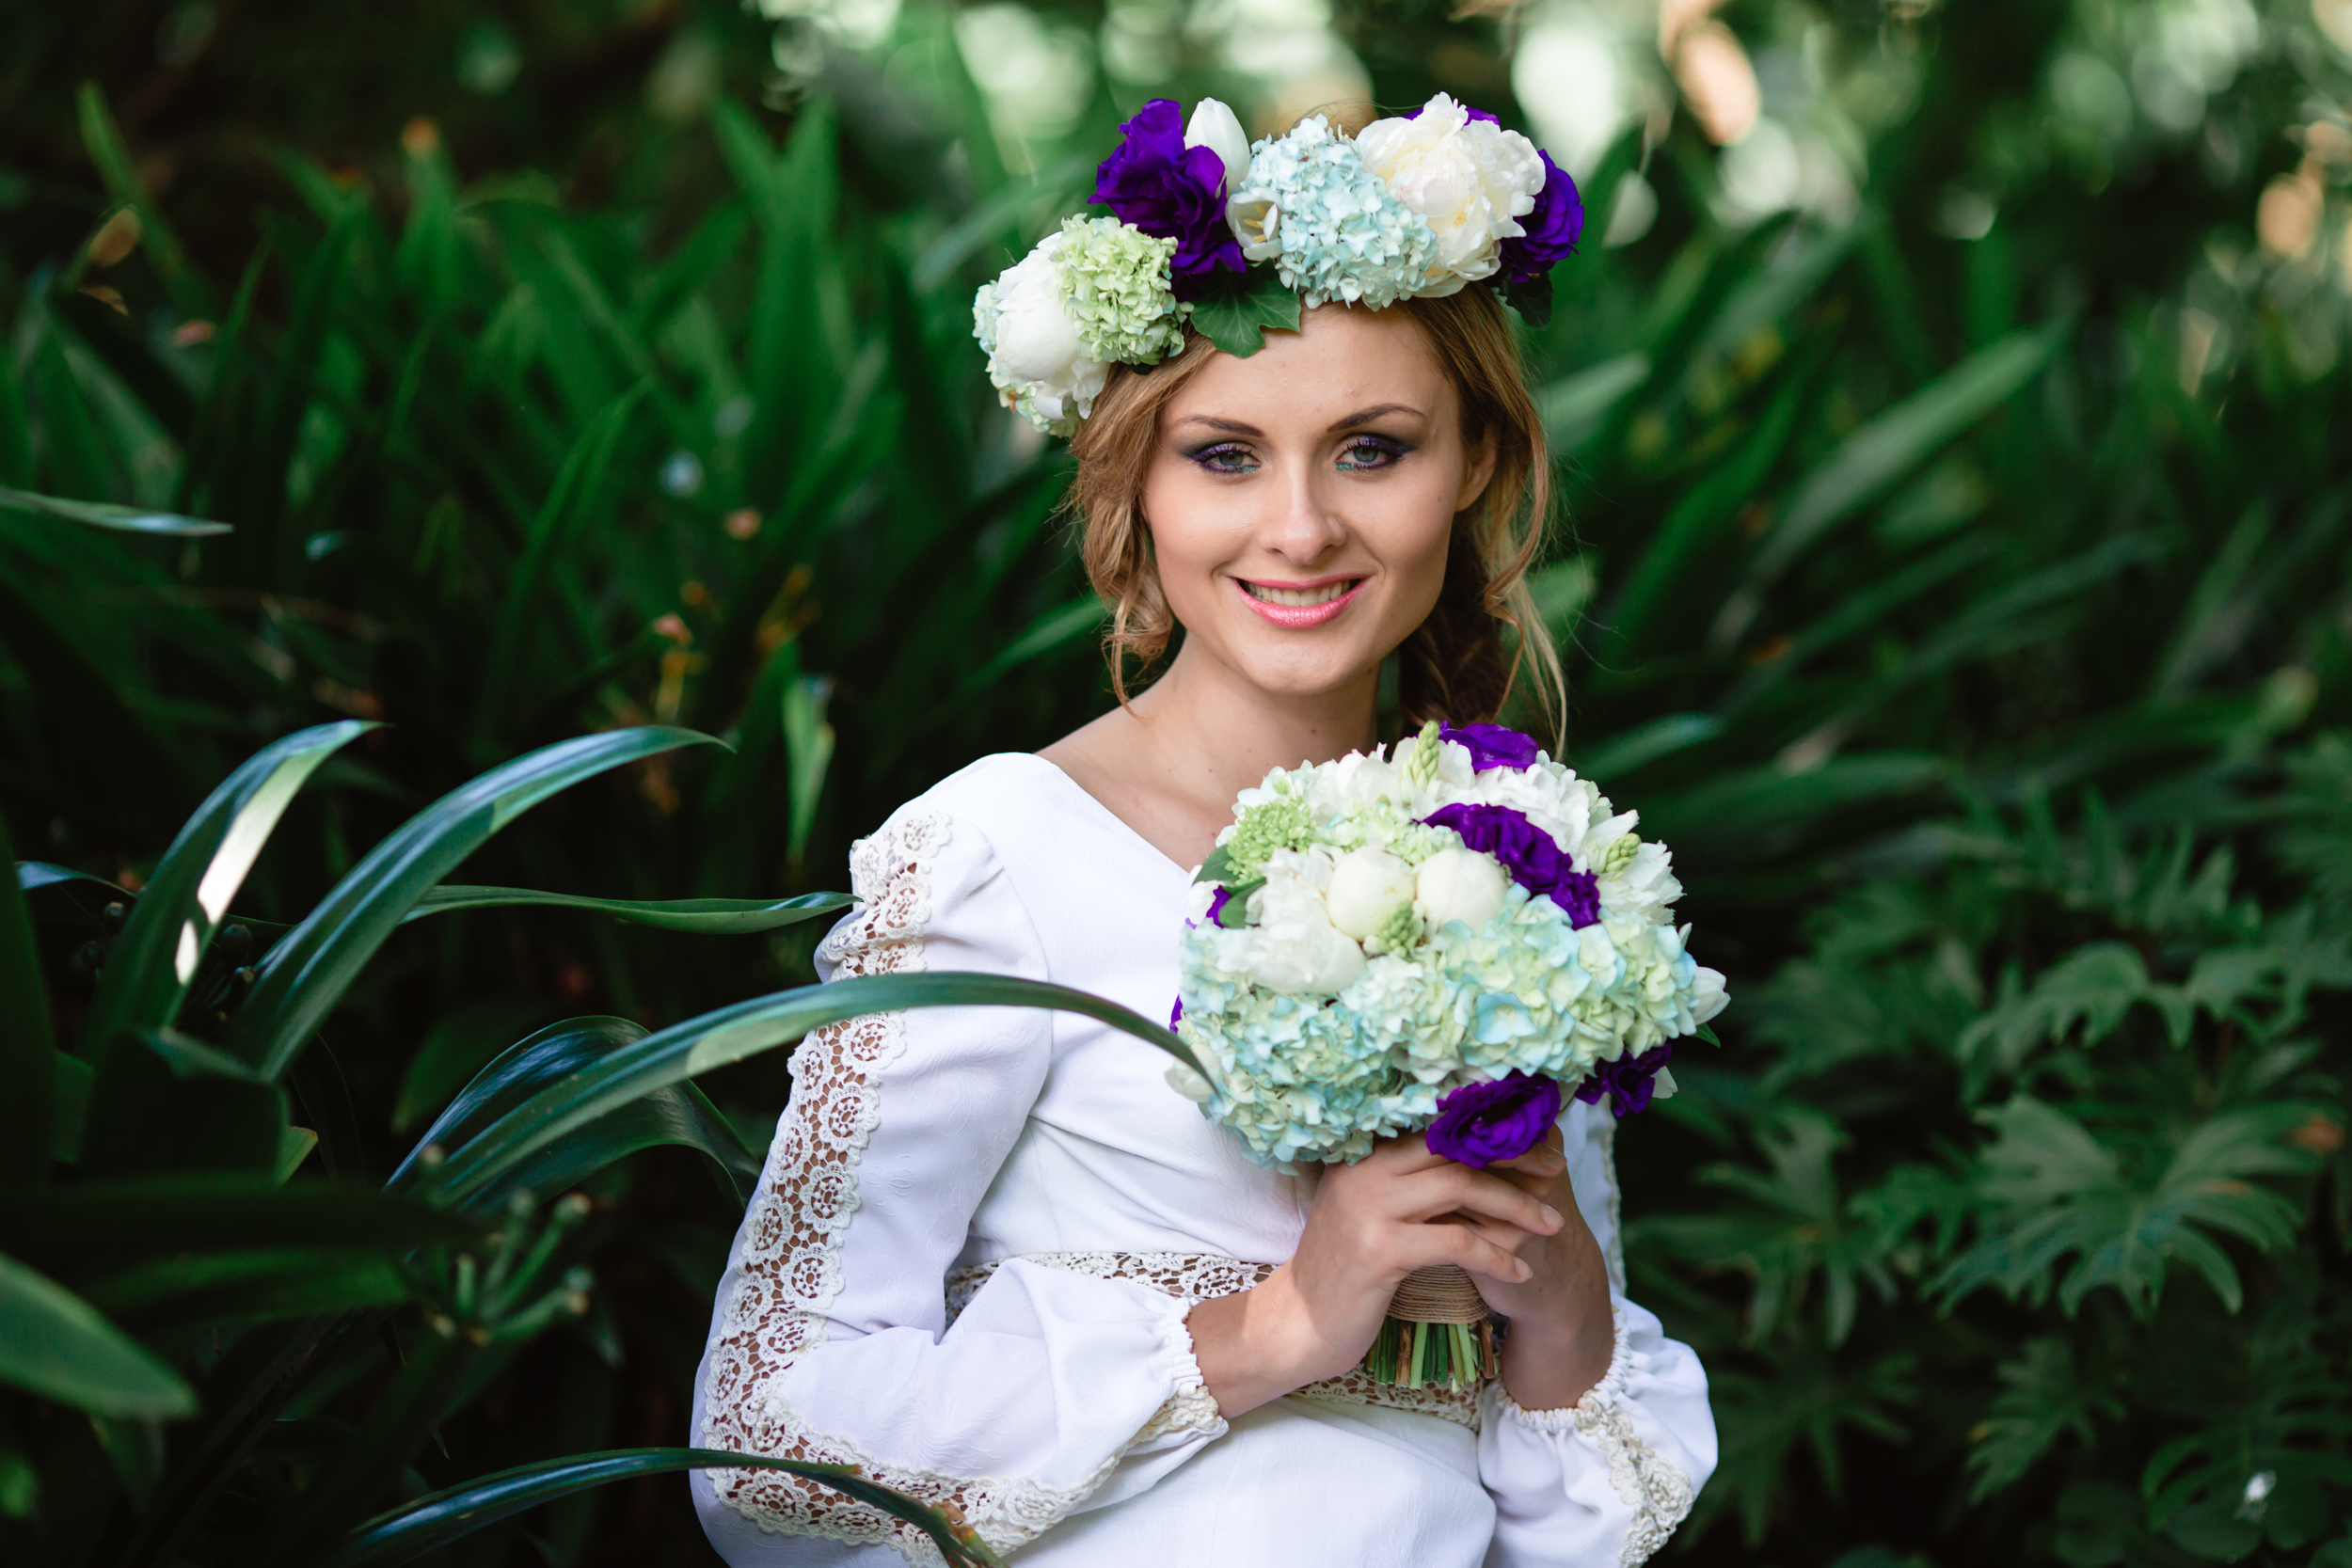 Garden Wedding - Floral Crown and bridal bouquet 19.jpg